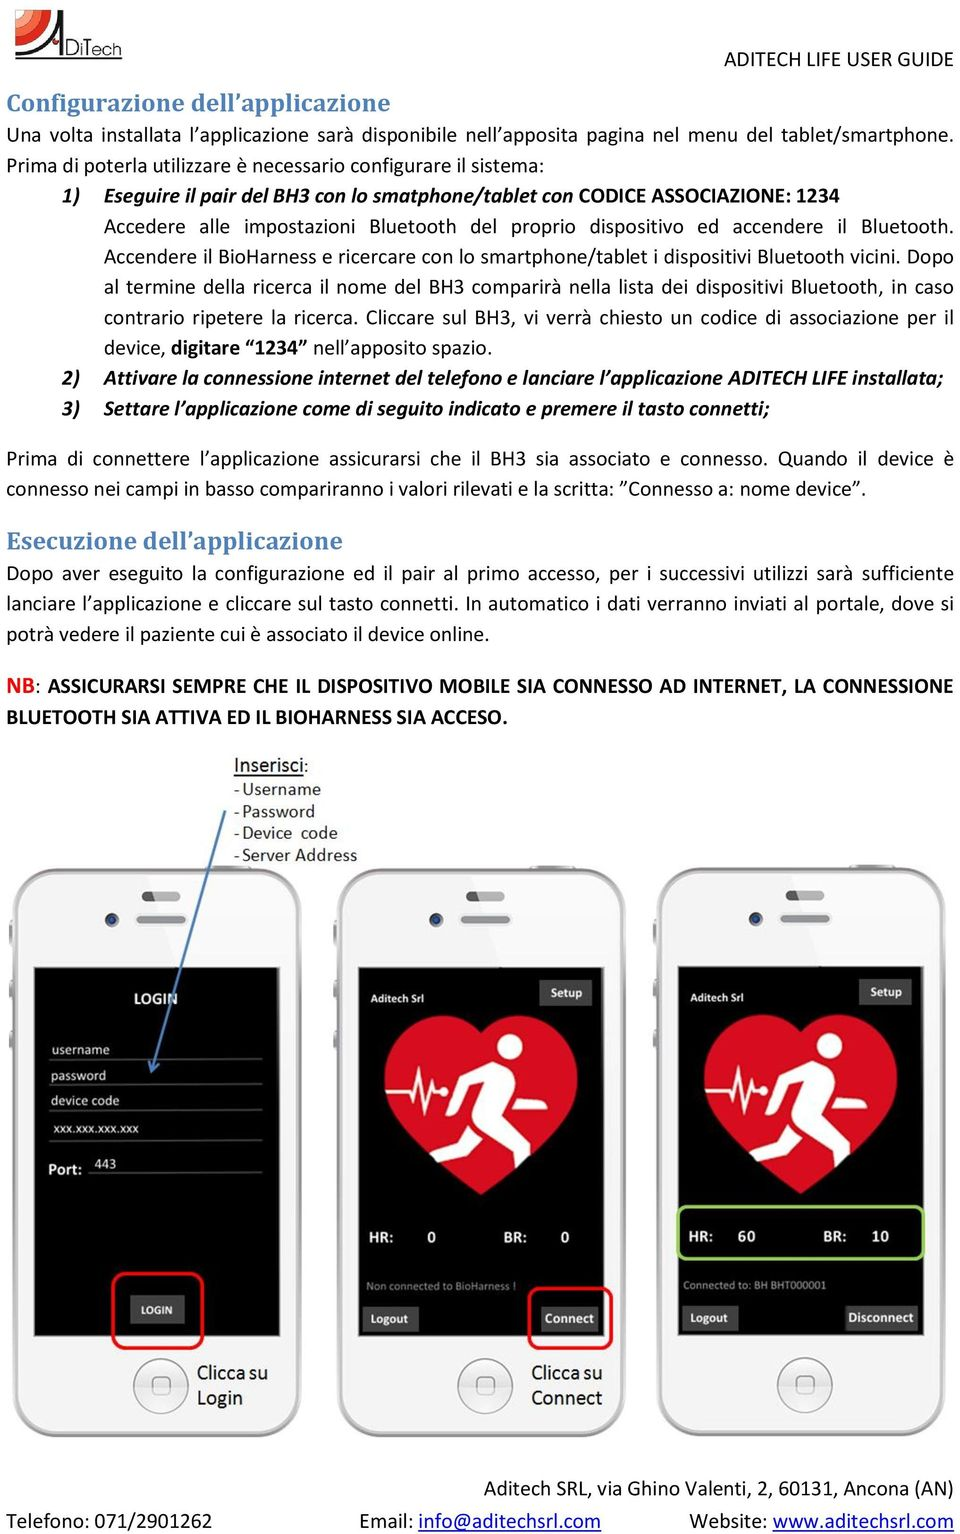 dispositivo ed accendere il Bluetooth. Accendere il BioHarness e ricercare con lo smartphone/tablet i dispositivi Bluetooth vicini.